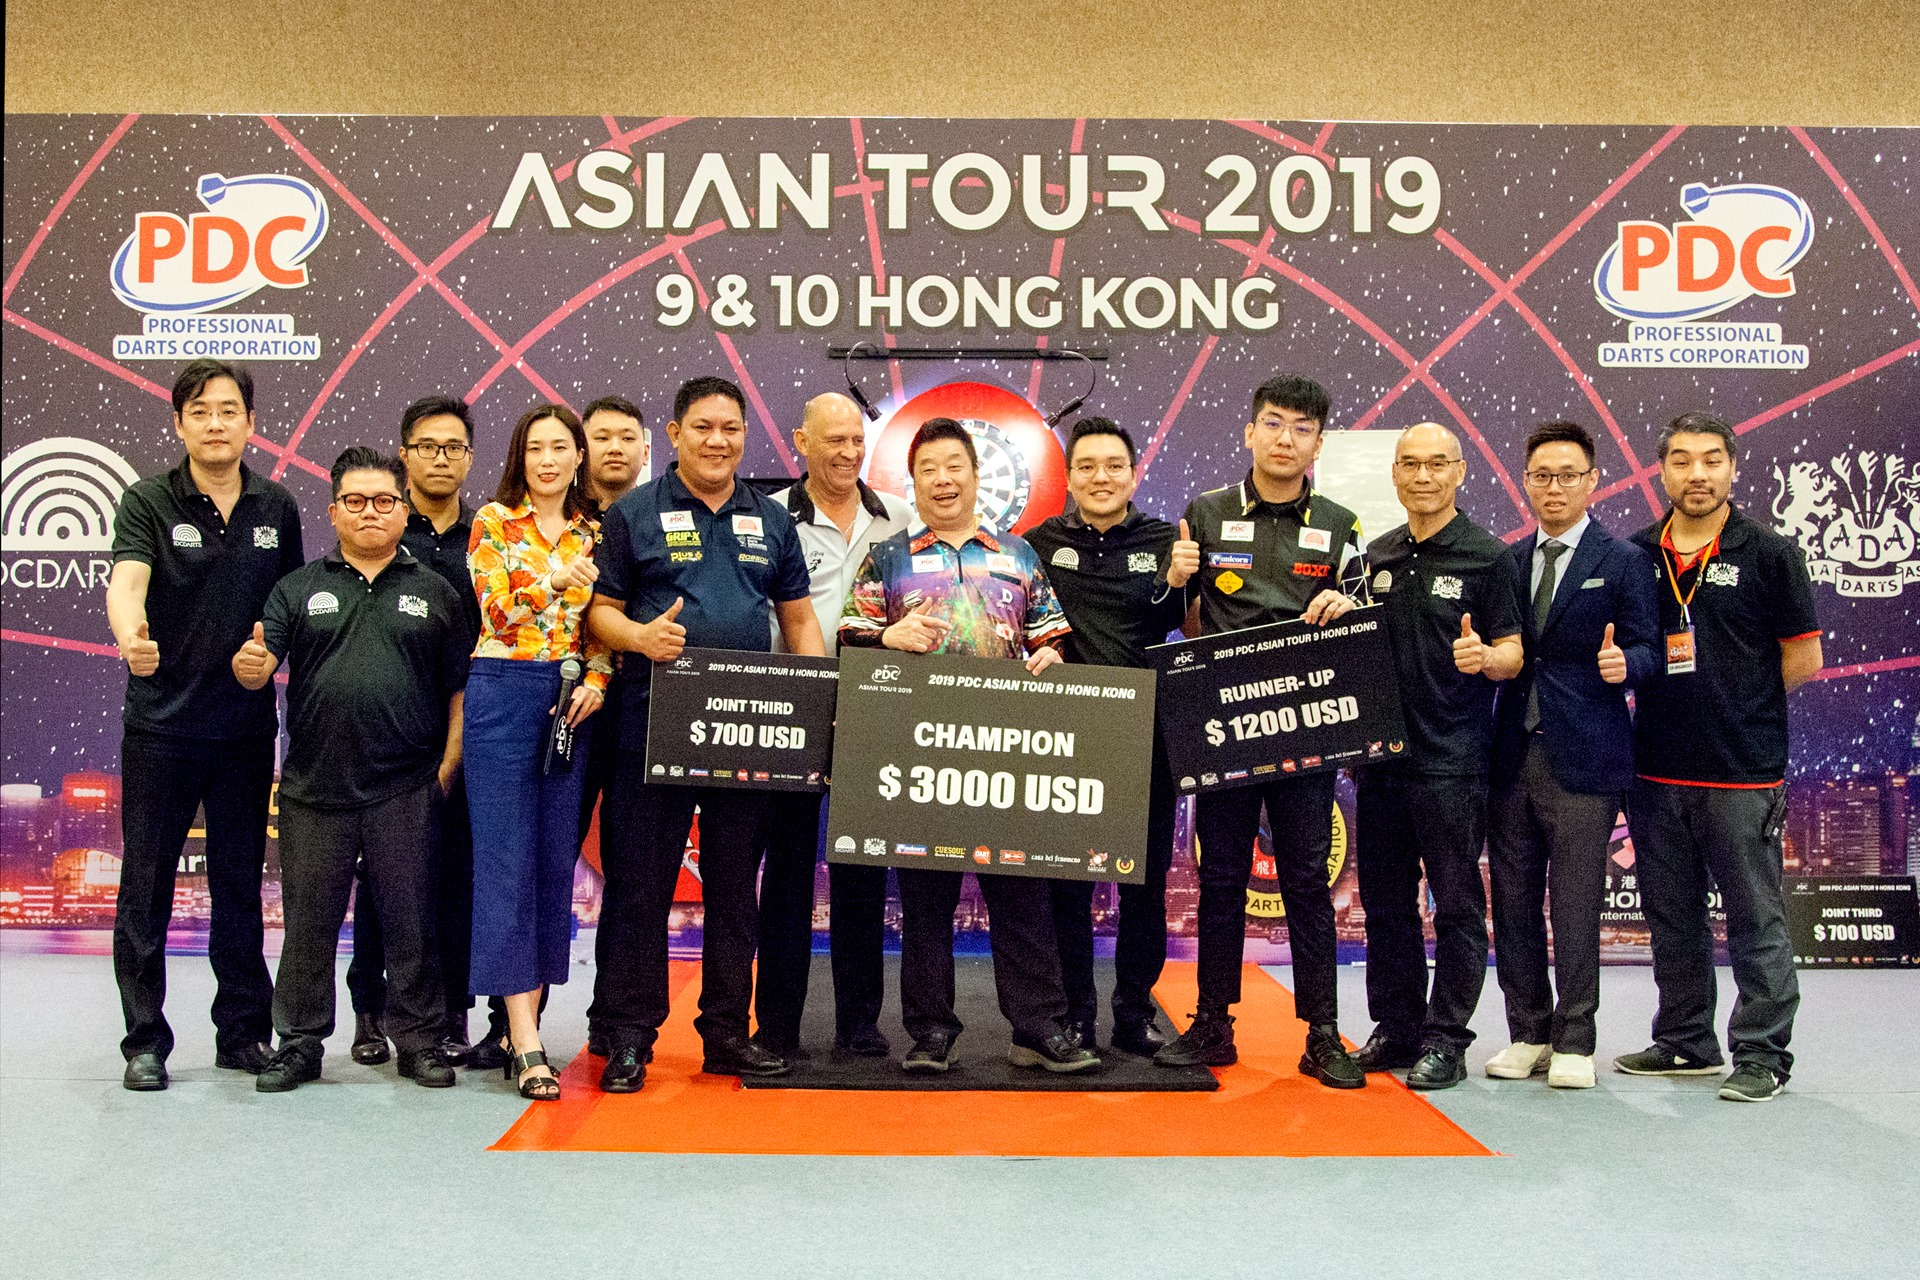 【PDC Asian Tour 2019】STAGE 9